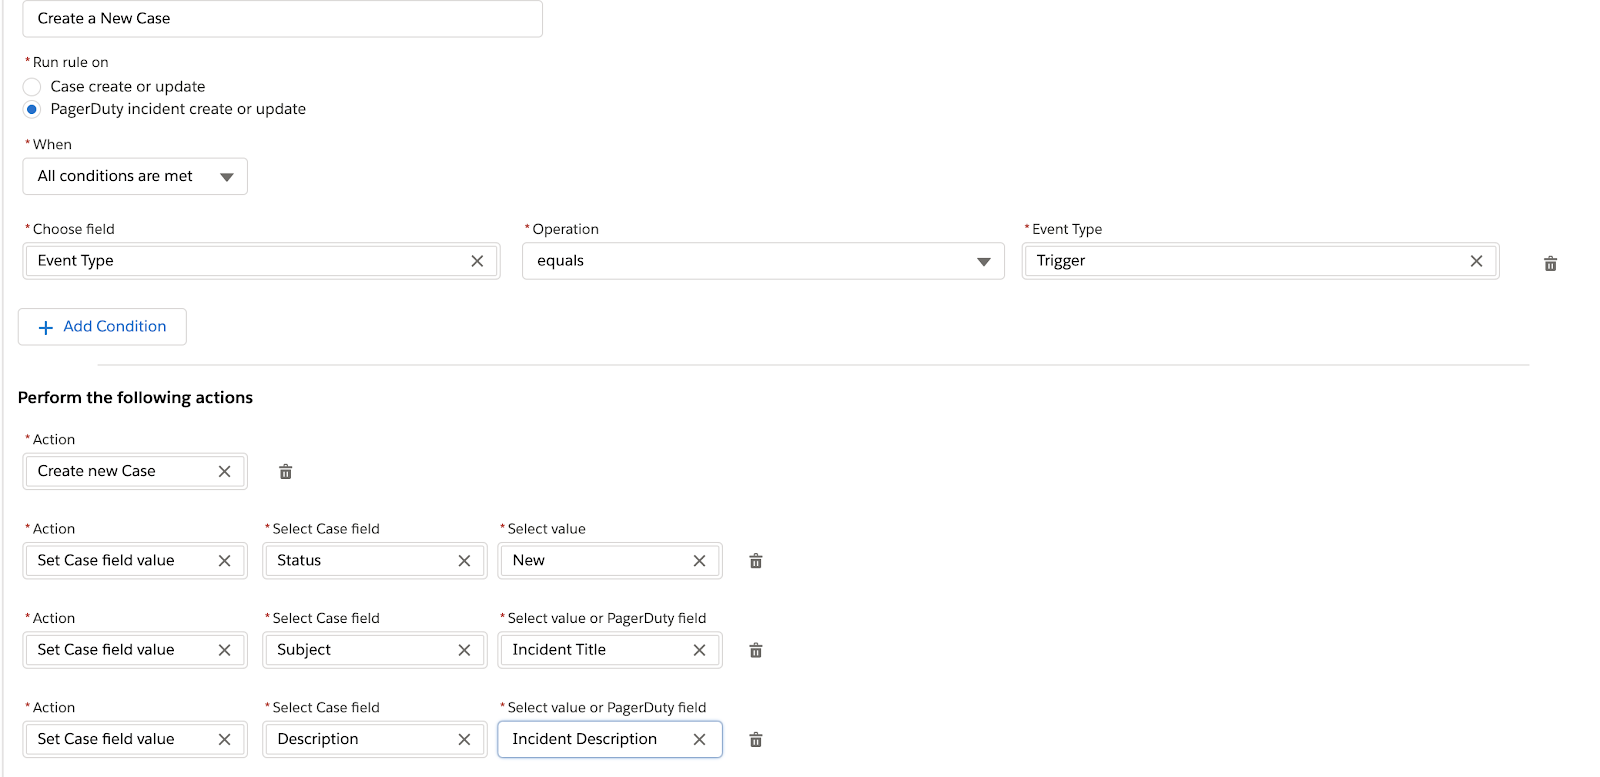 Example ruleset for creating new cases in Salesforce Service Cloud based on the content of a PagerDuty Incident